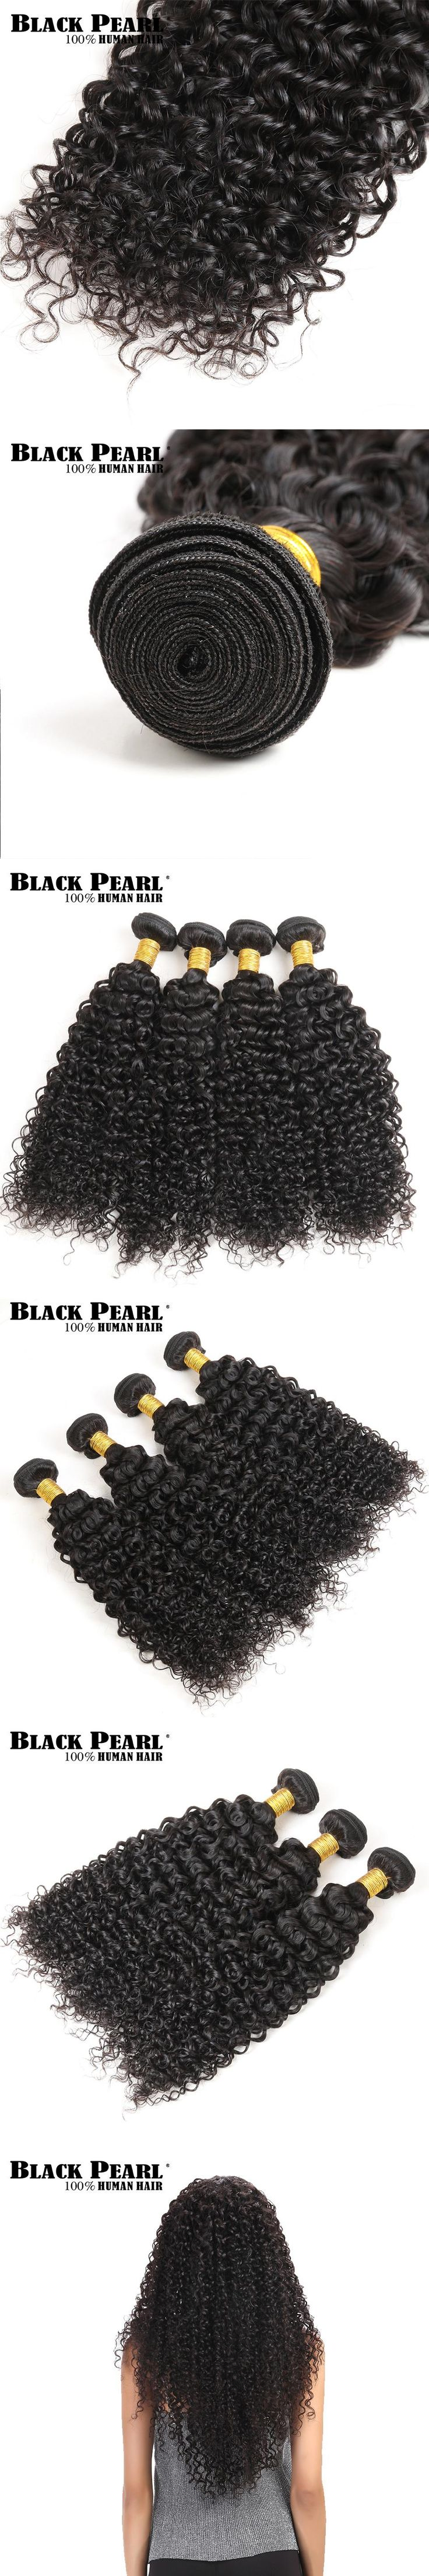 Black Pearl Pre-Colored Peruvian Hair Weave Bundles Human Hair 4 Bundles  Hair Weft Curly Weave Hair Extensions 400g Non-Remy